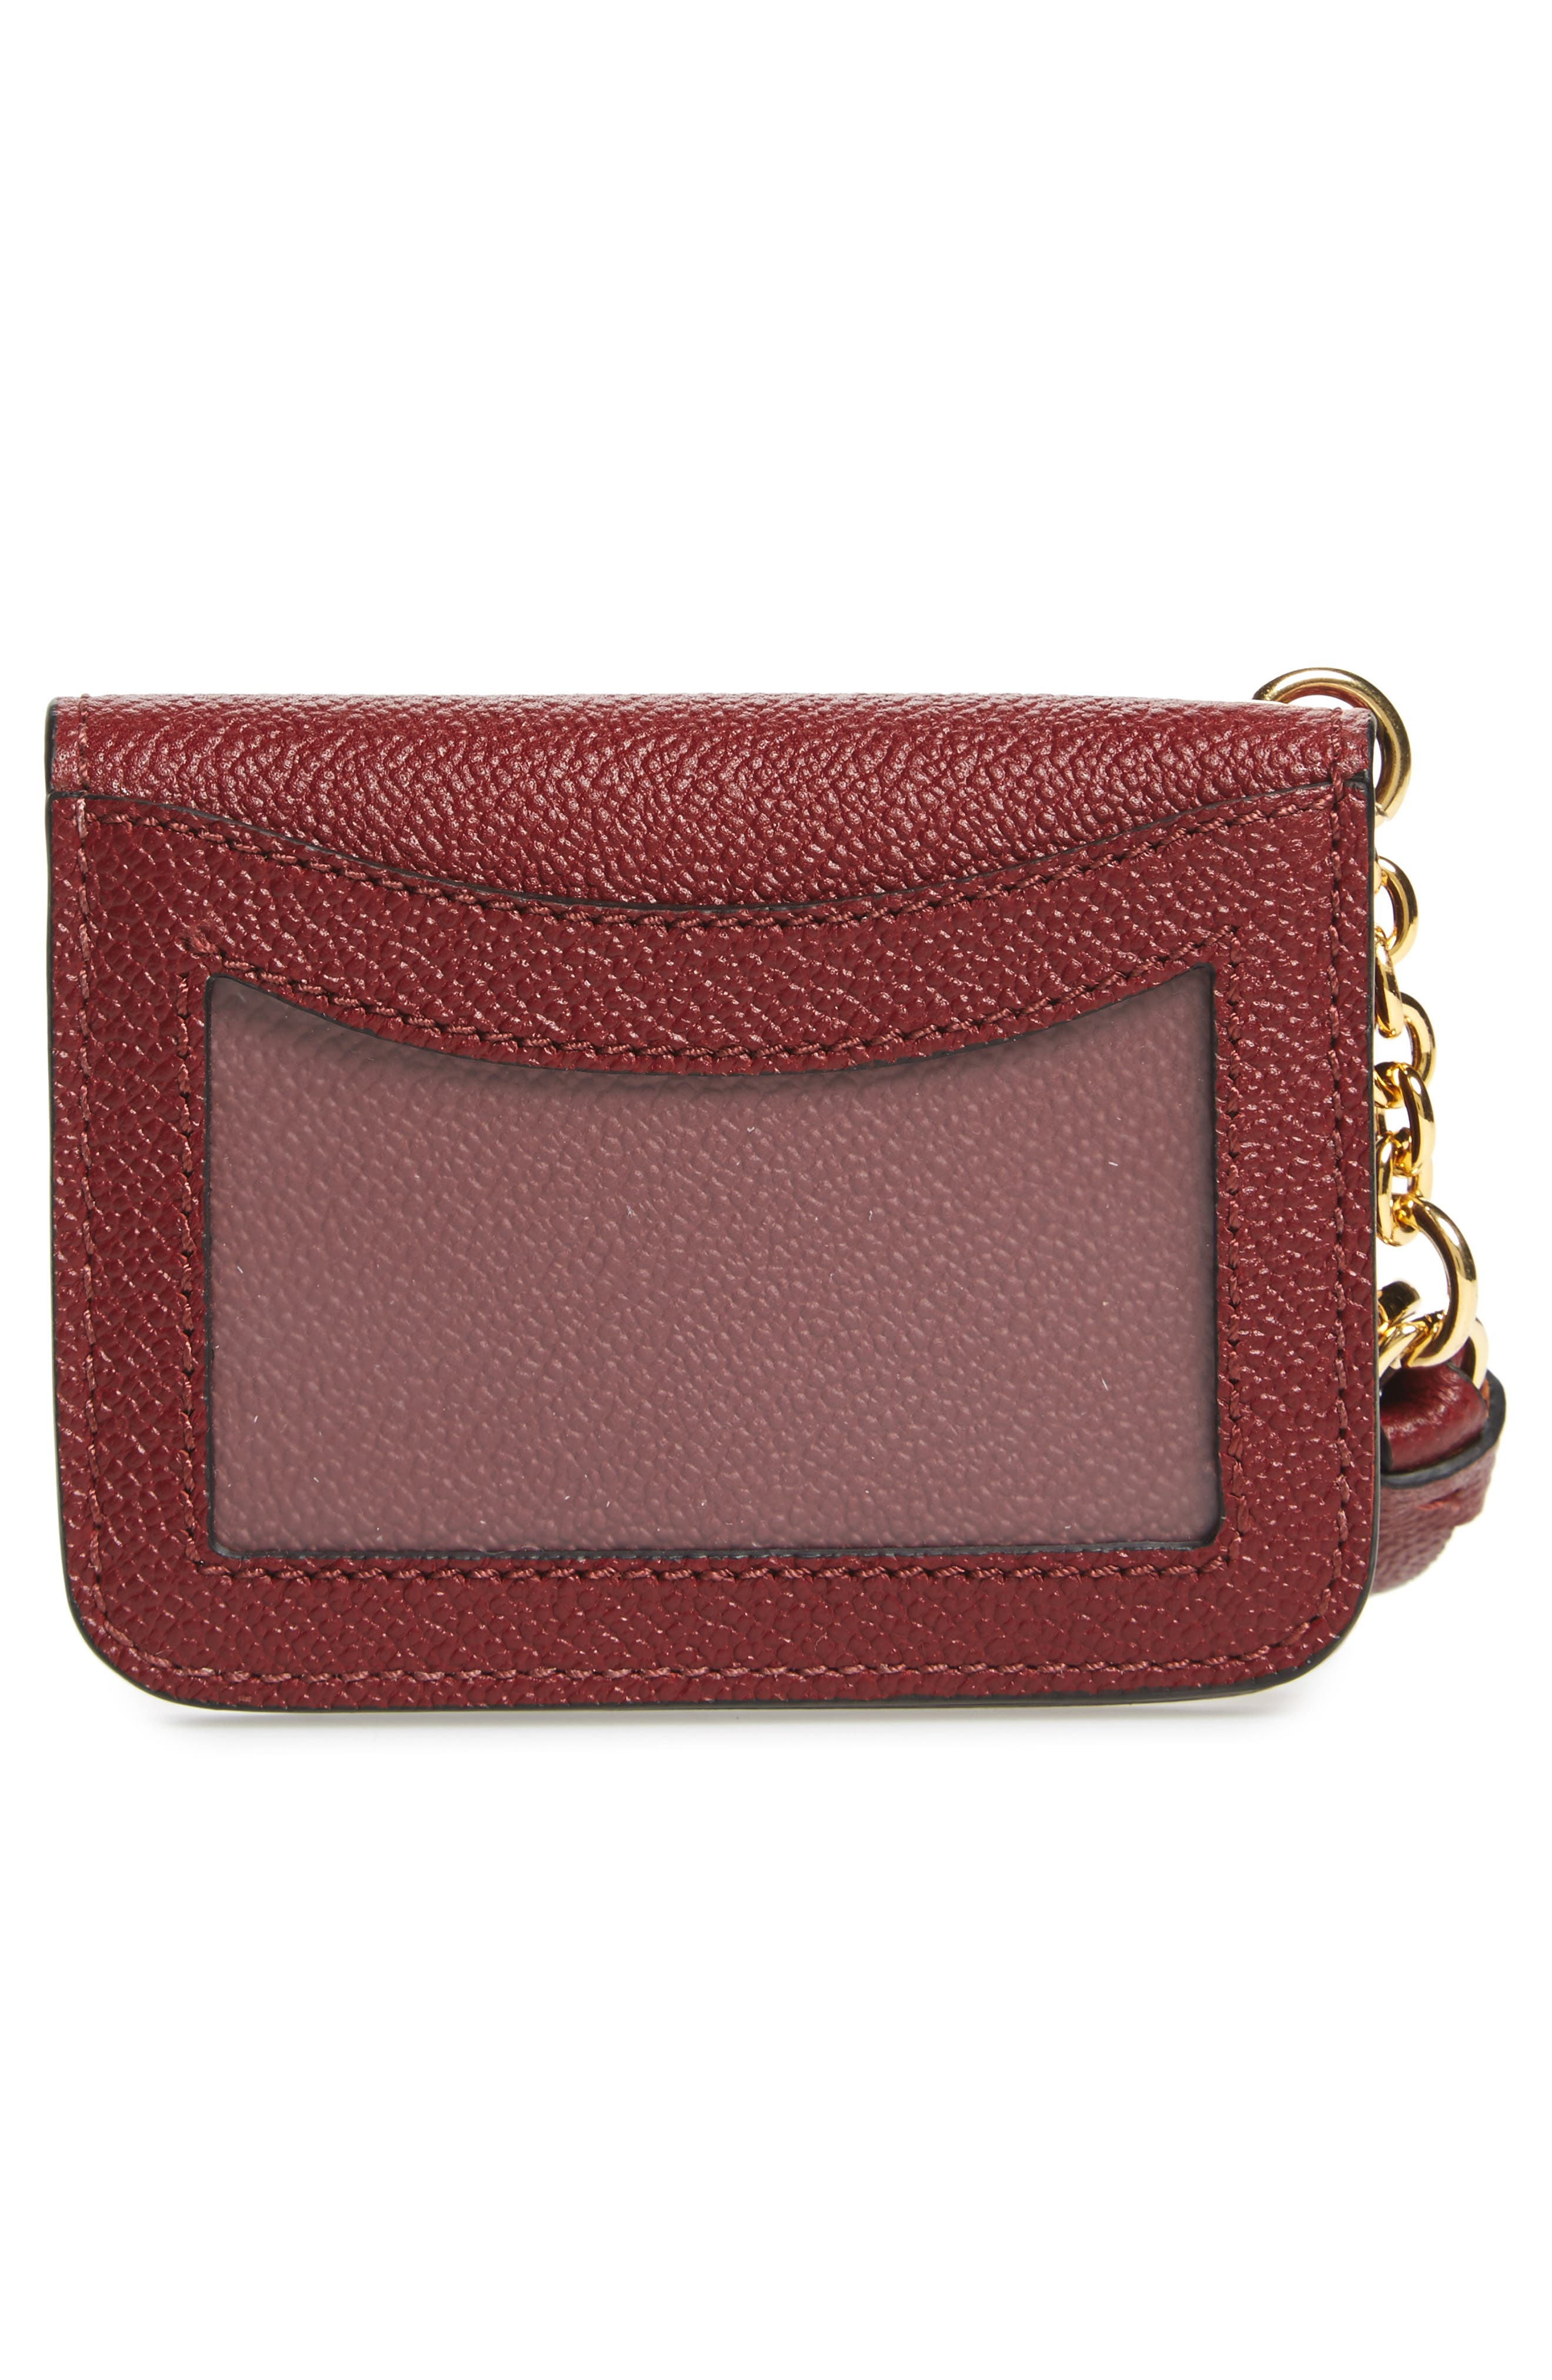 Alternate Image 3  - Burberry Camberwellid Leather Card Case Bag Charm